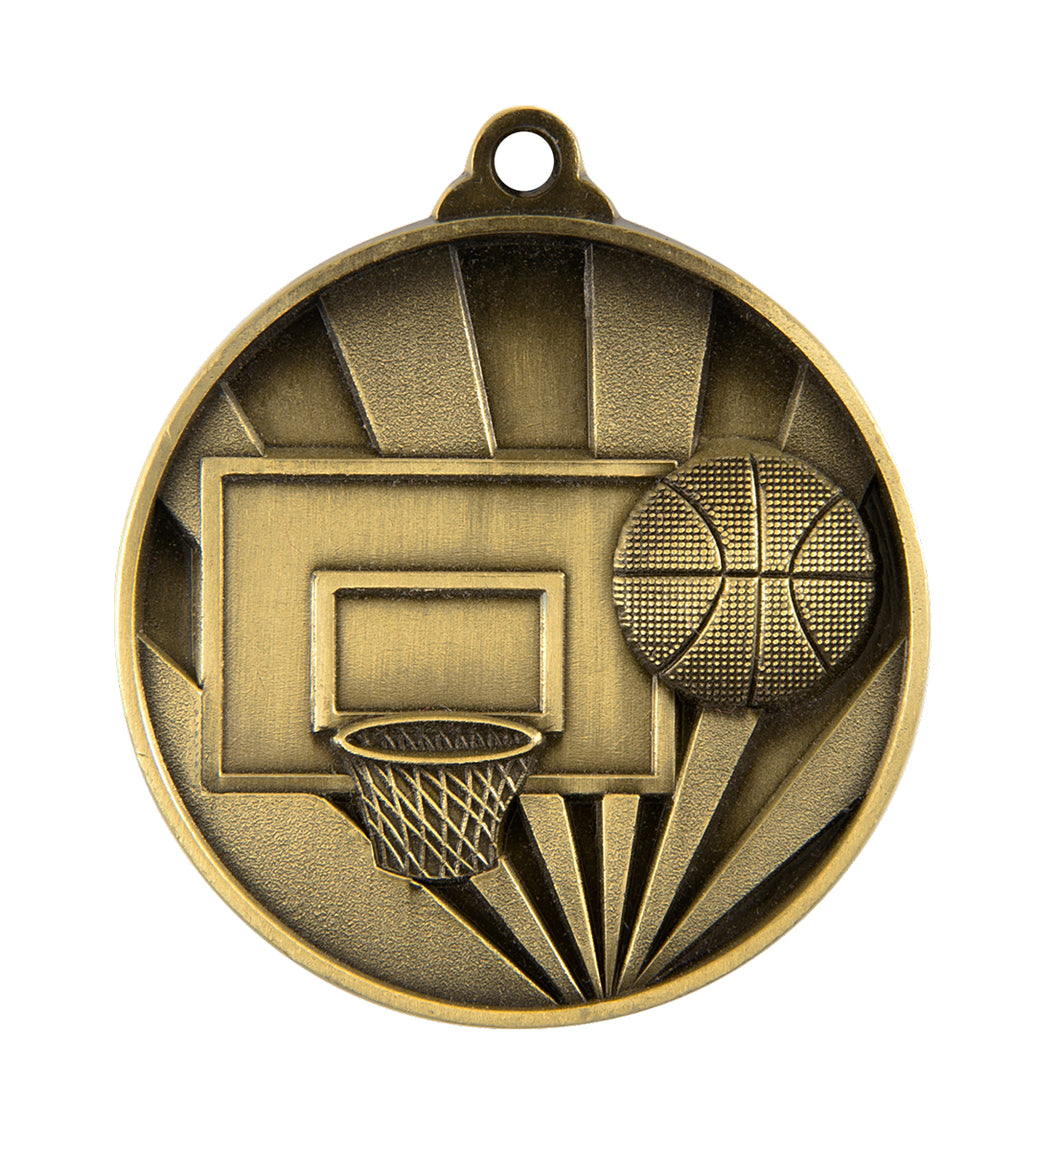 1076-7G Sunrise Basketball Medal - Great Value! Featuring a Backboard, Hoop & Basketball  50mm Diameter, 25 x 38mm Ribbon & Engraving plate of the back included, Burleigh Gold Coast